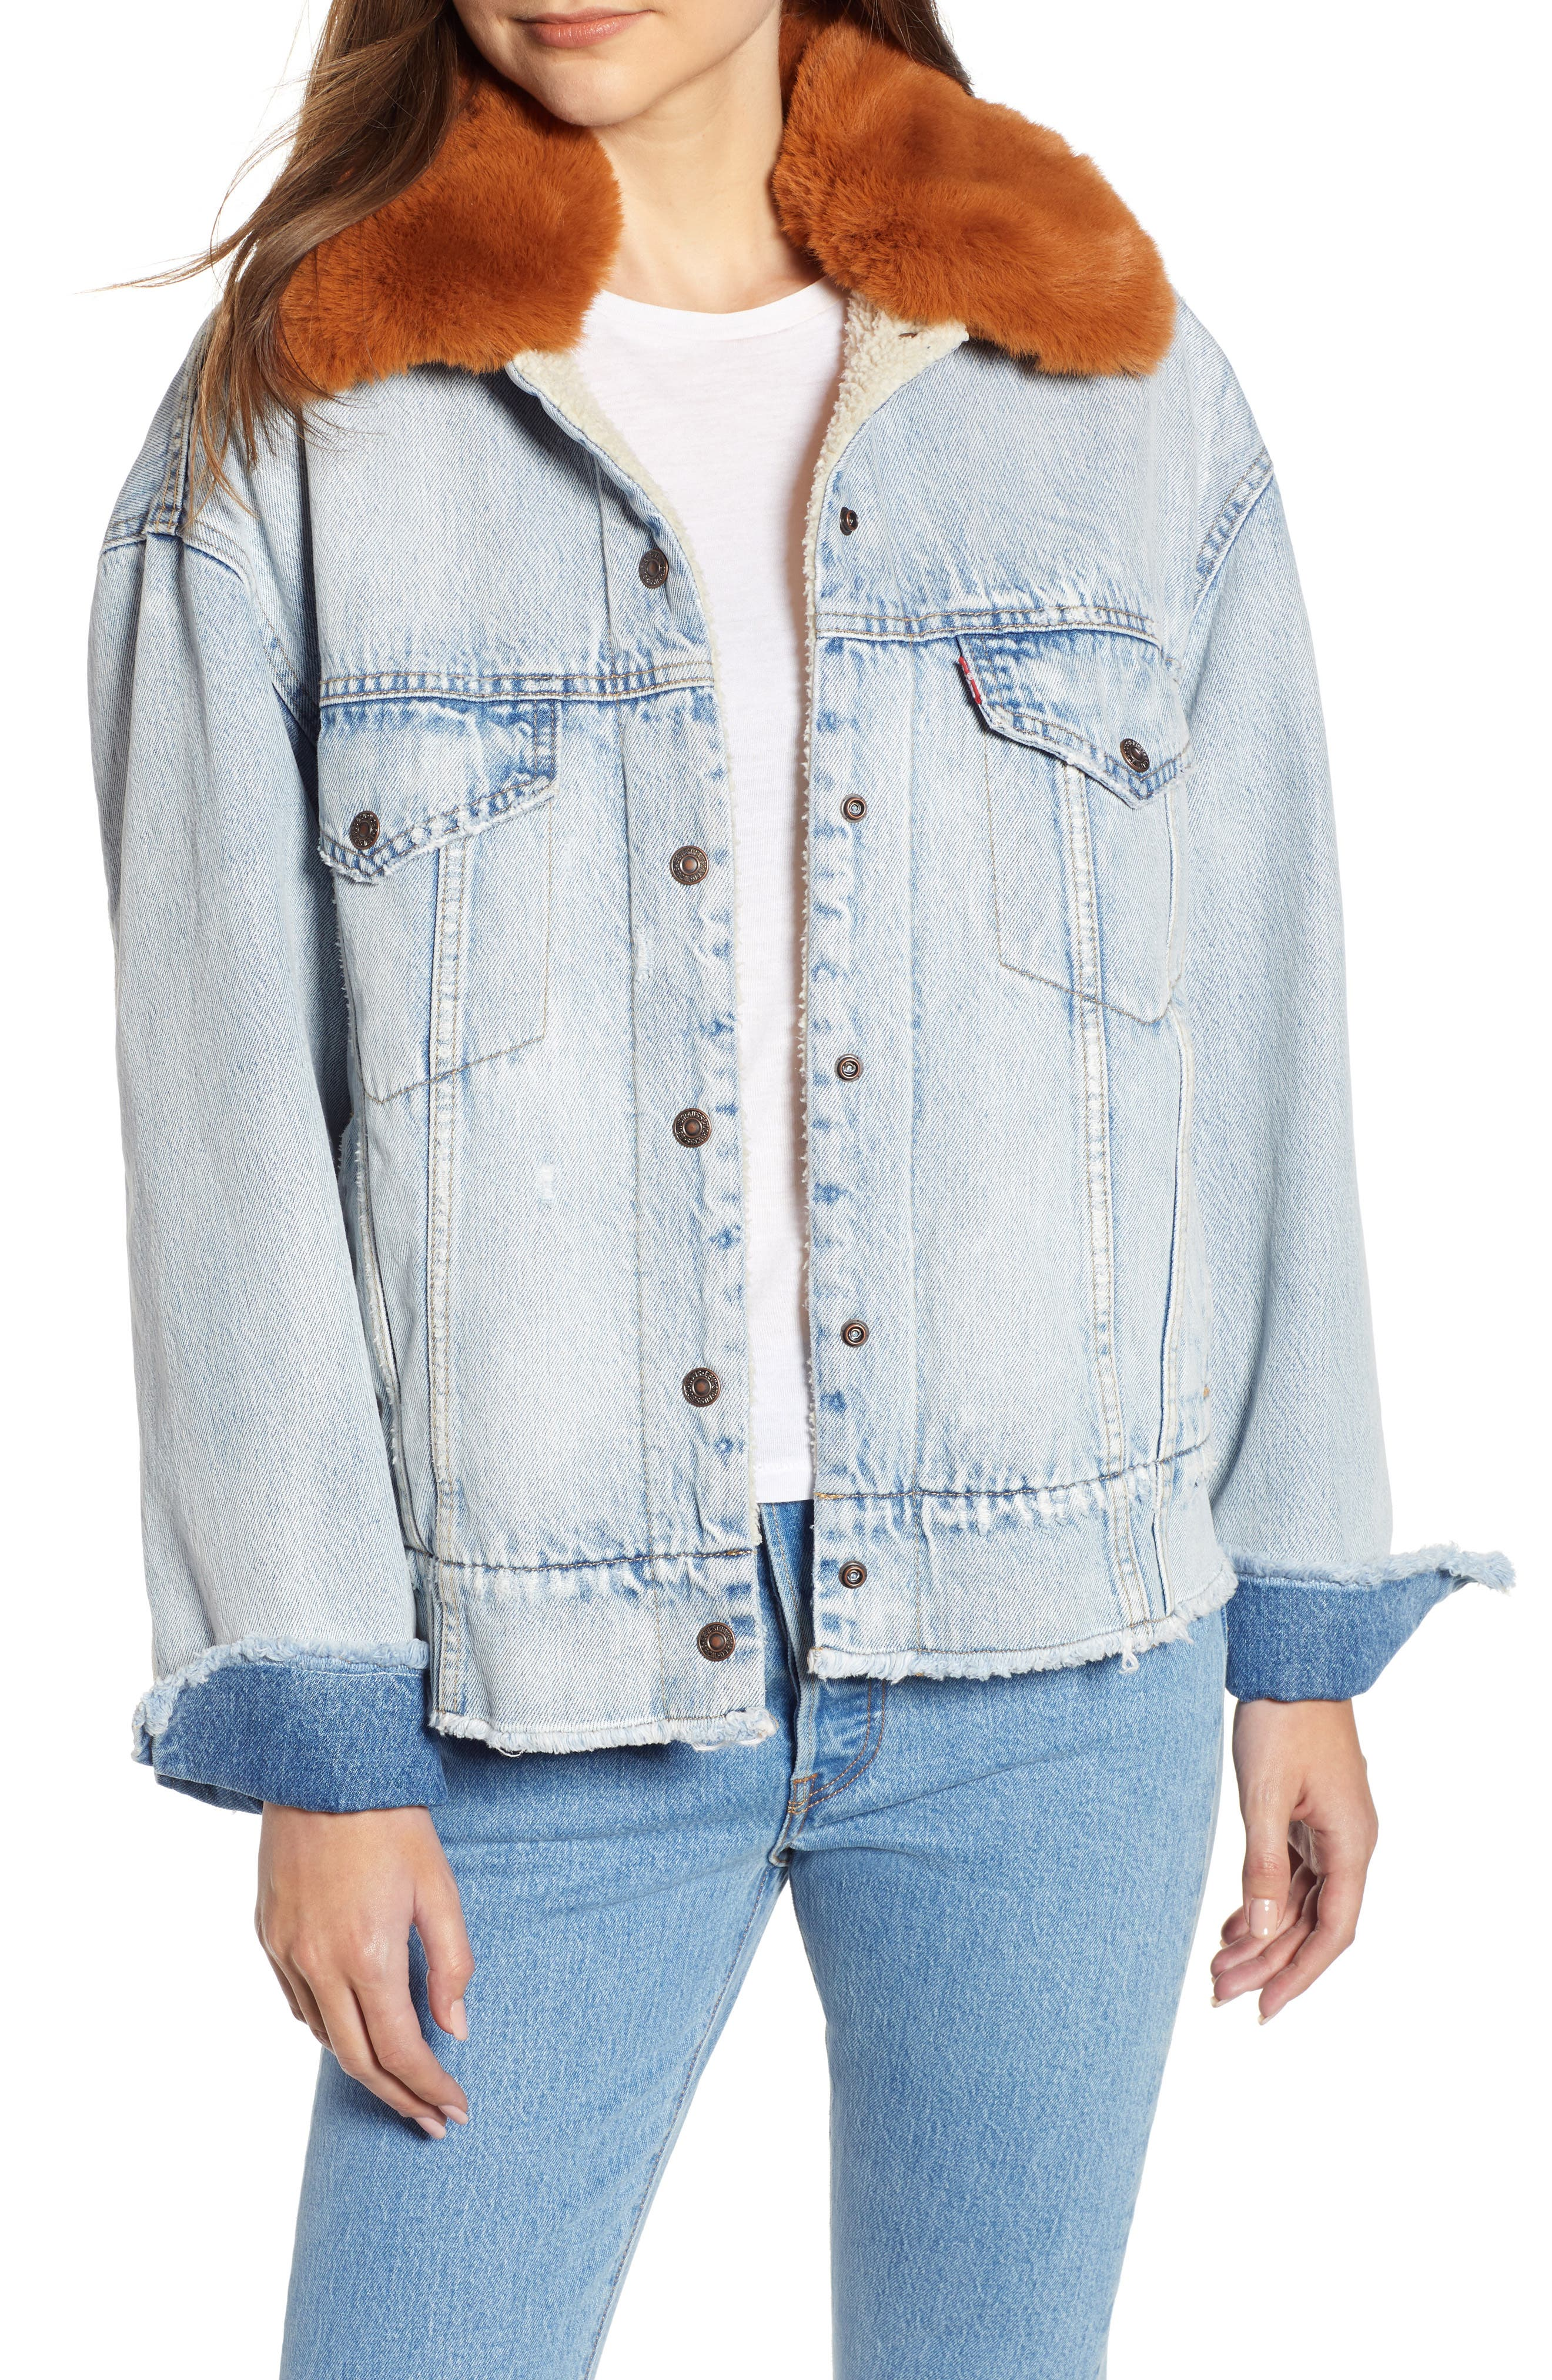 Oversize Faux Shearling Lined Denim Trucker Jacket with Removable Faux Fur Collar,                             Main thumbnail 1, color,                             401